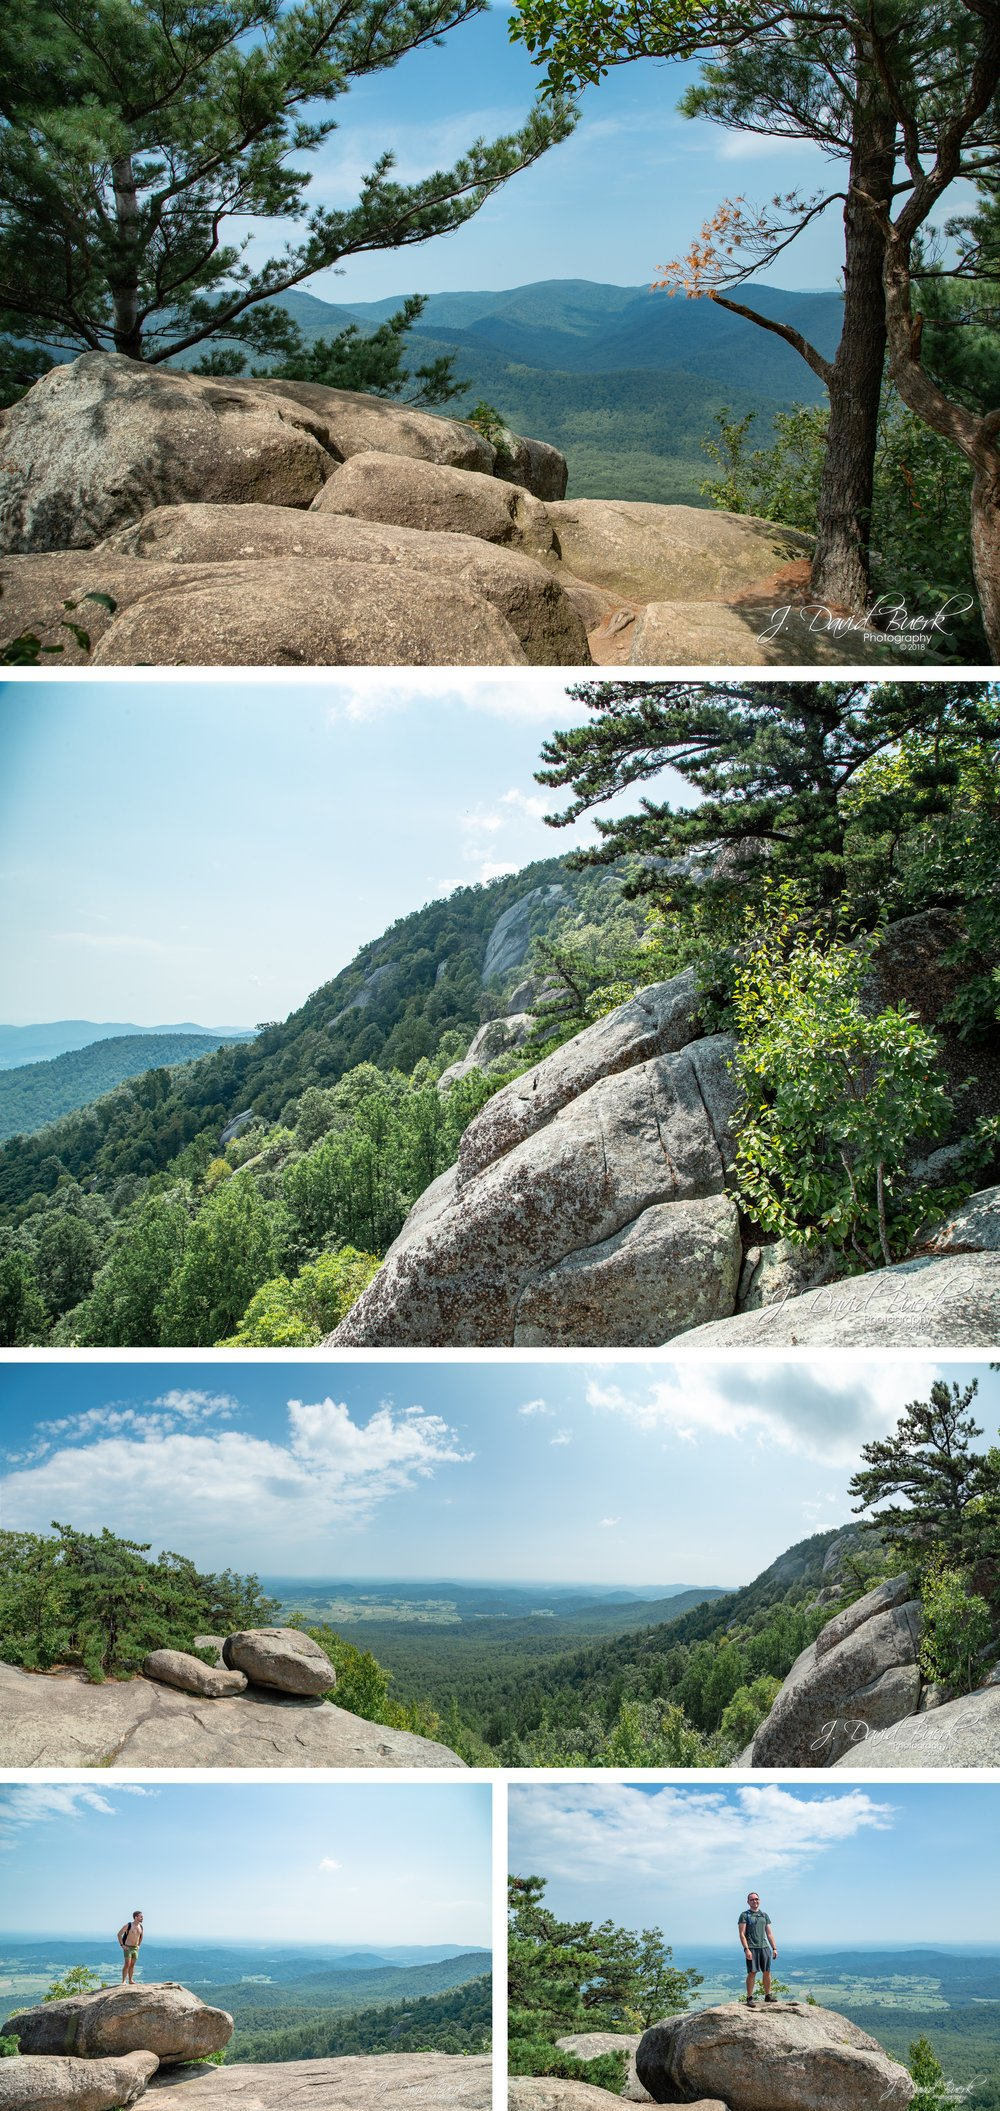 20180826 - Old Rag Mountain August 2018 3.jpg